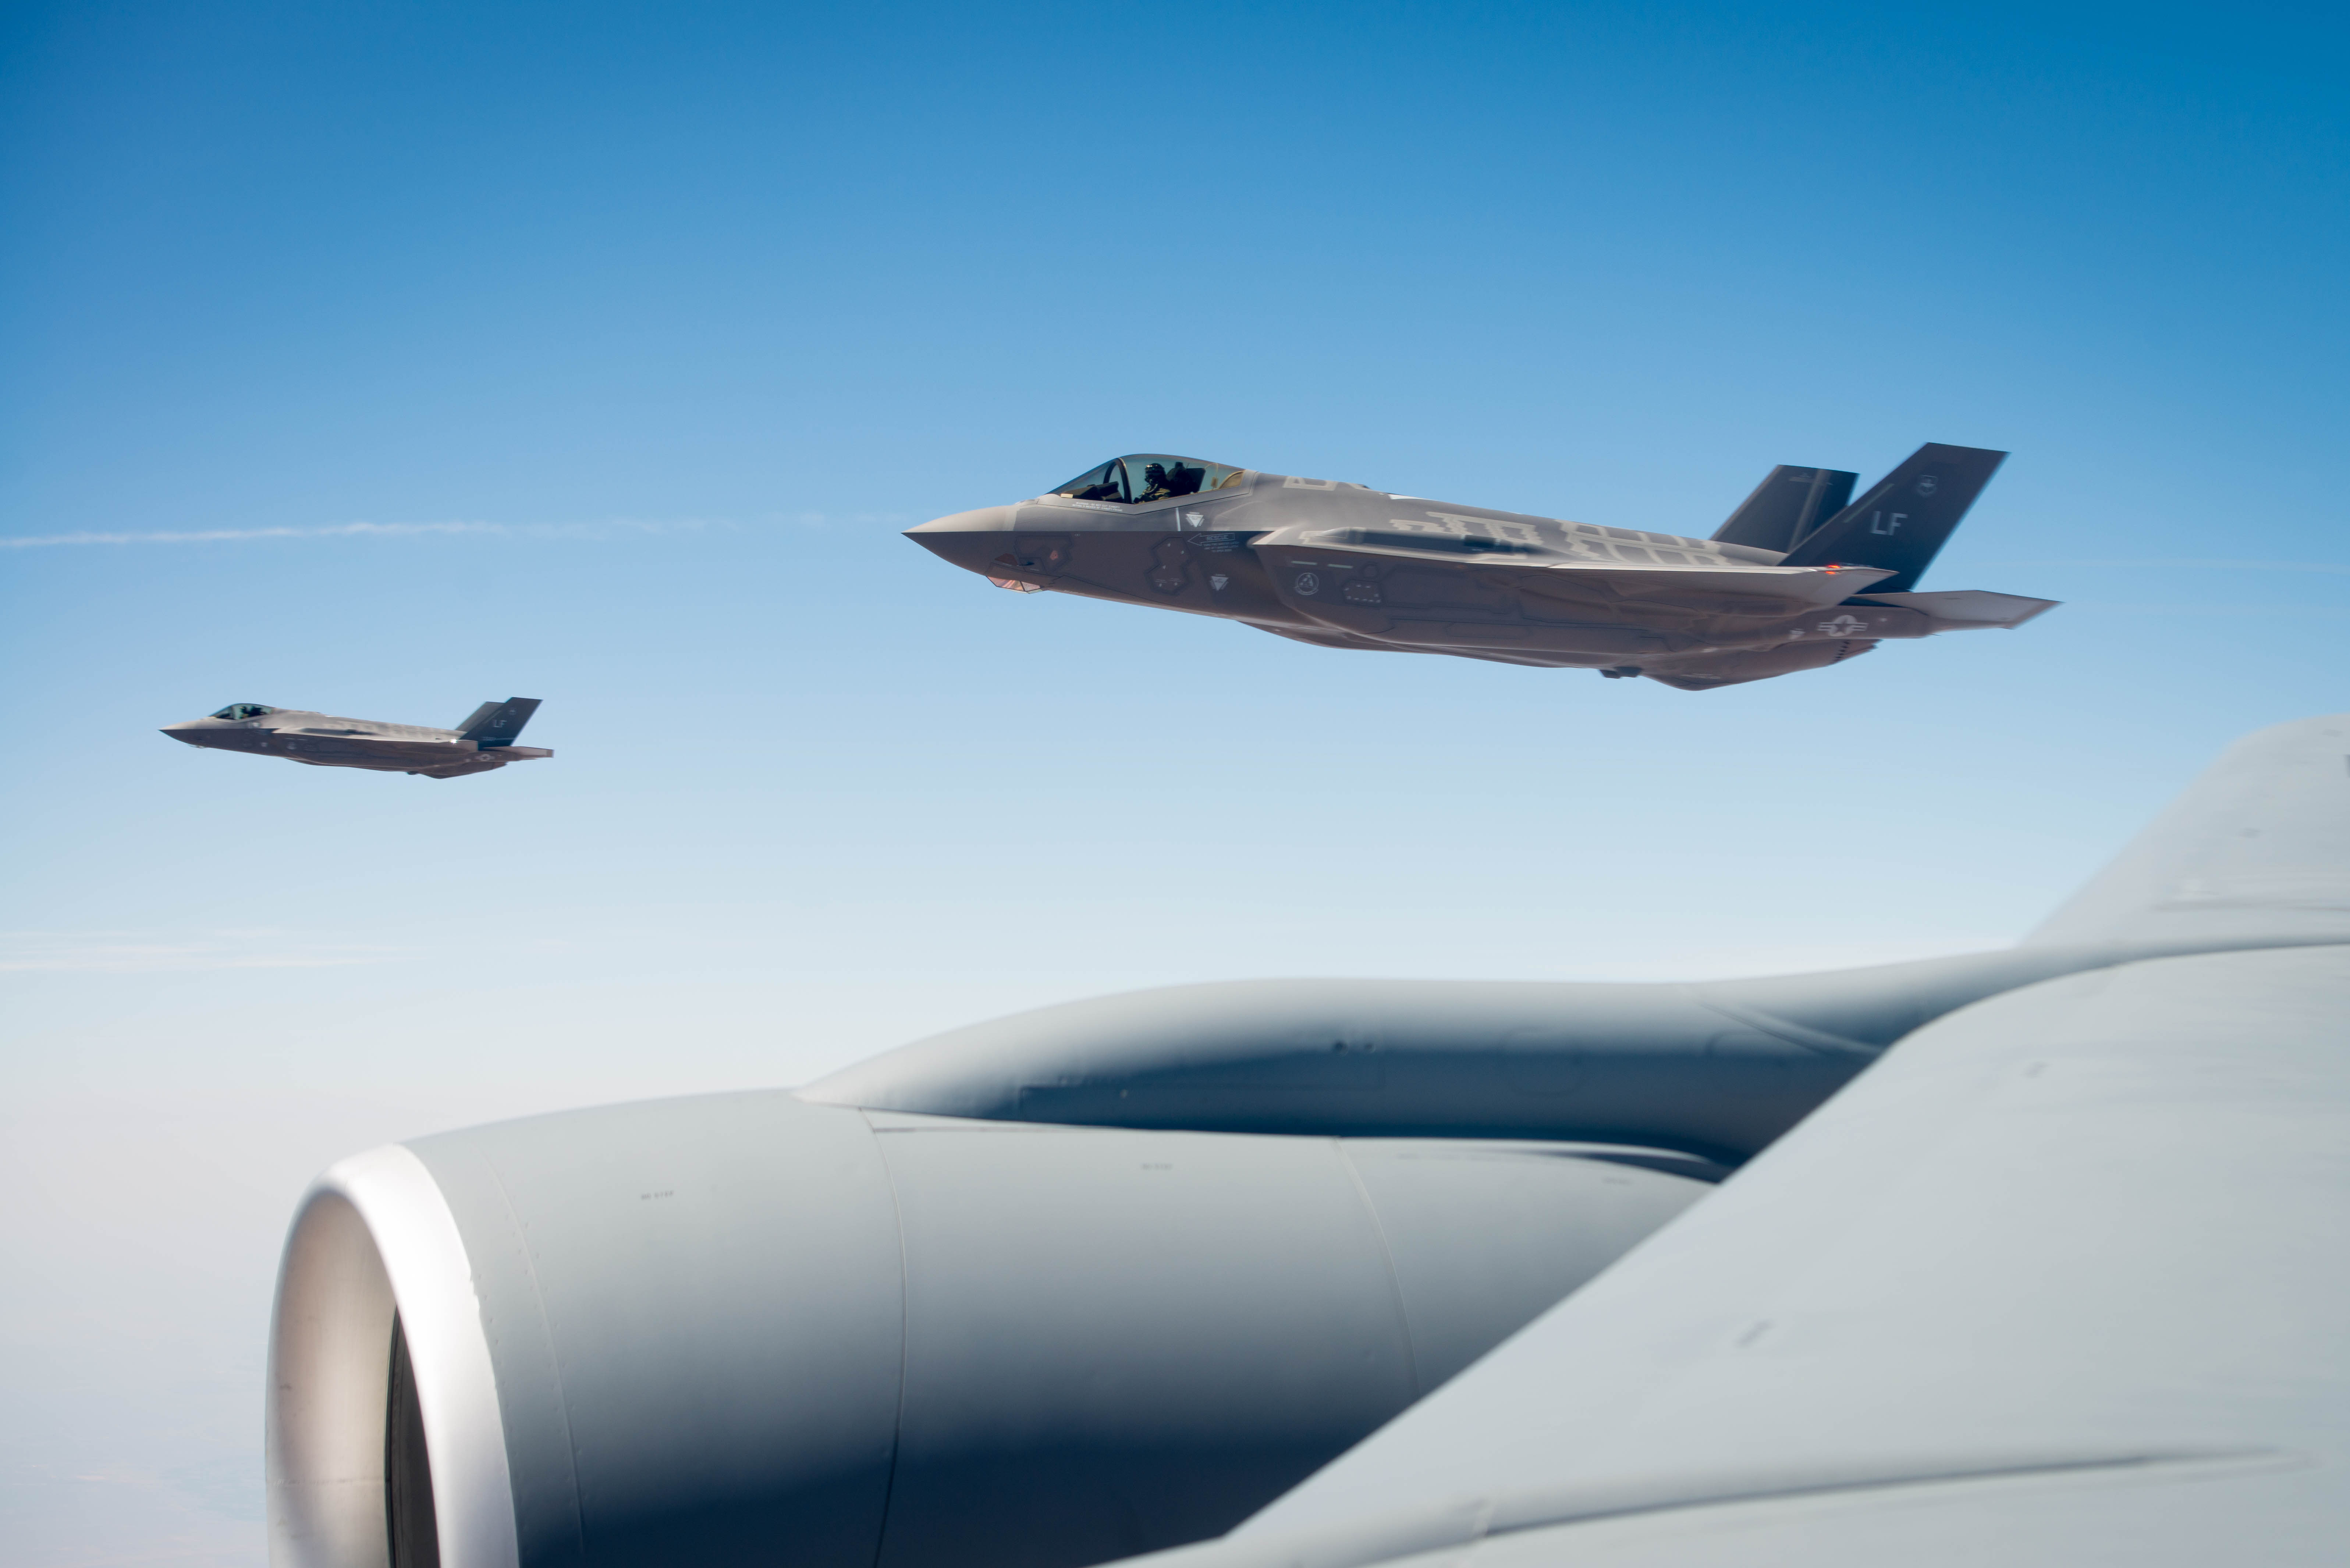 Two F-35A Lighting IIs assigned to the 62nd Fighter Squadron, Luke Air Force Base Ariz, fly near an Arizona National Guard KC-135 Stratotanker Aug. 4, 2017. Four F-35's participated in a missing man formation fly-over during 2nd Lt. Charles E. Carlson's funeral in Pennsylvania more than 70 years after being shot down over Germany in World War II when he was assigned to the 62nd FS. (Staff Sgt. Jensen Stidham/Air Force)